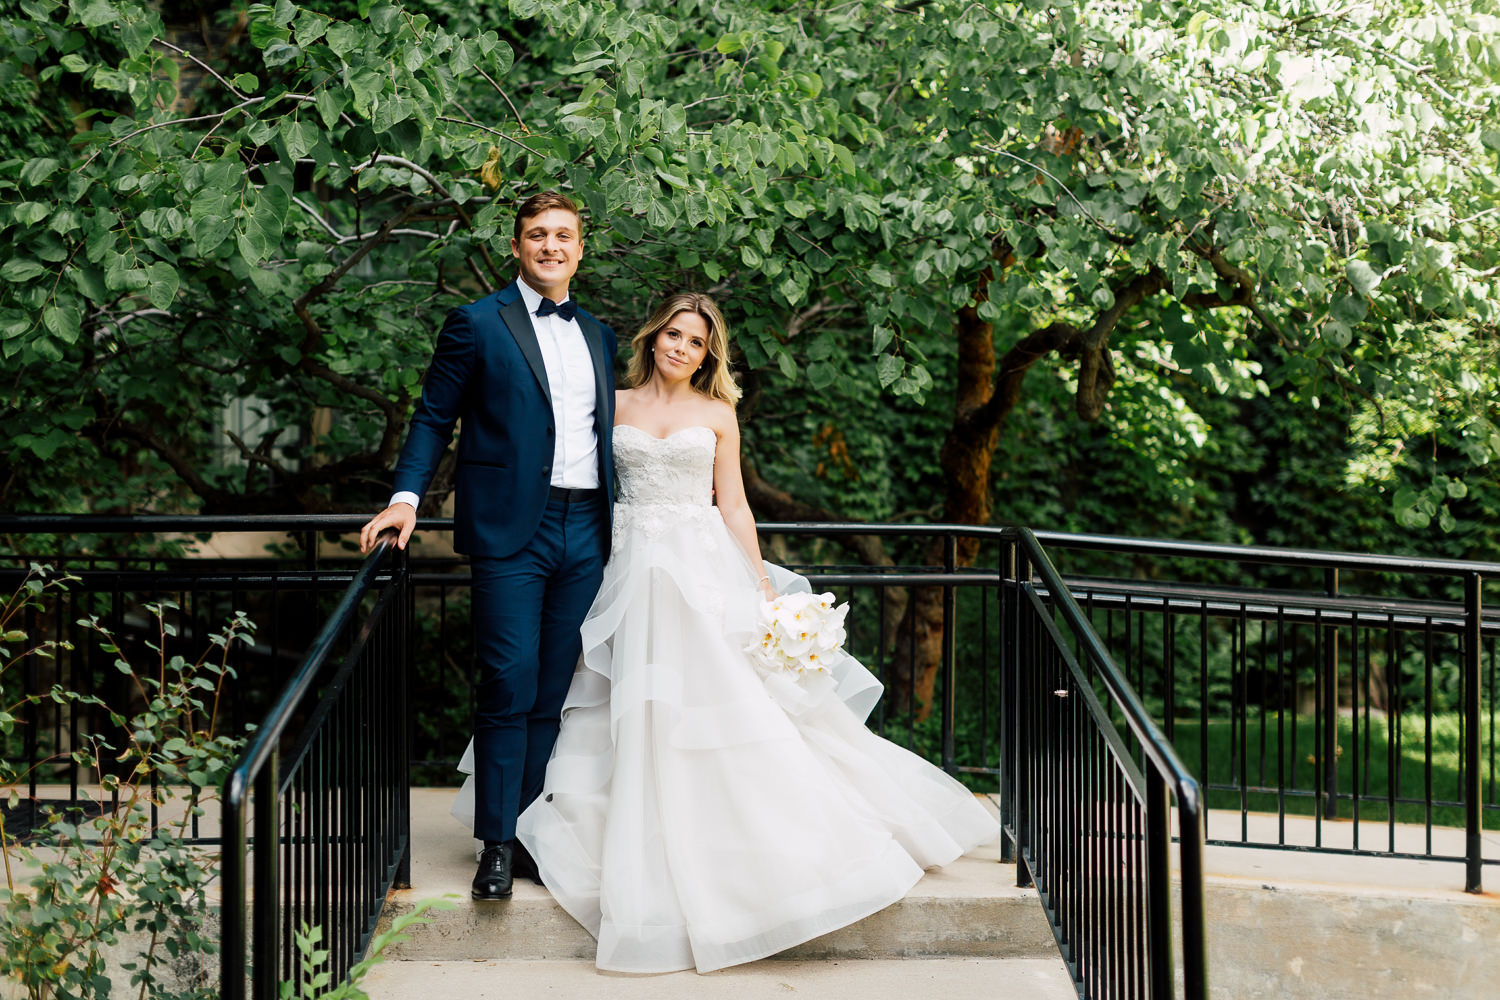 uoft wedding portraits